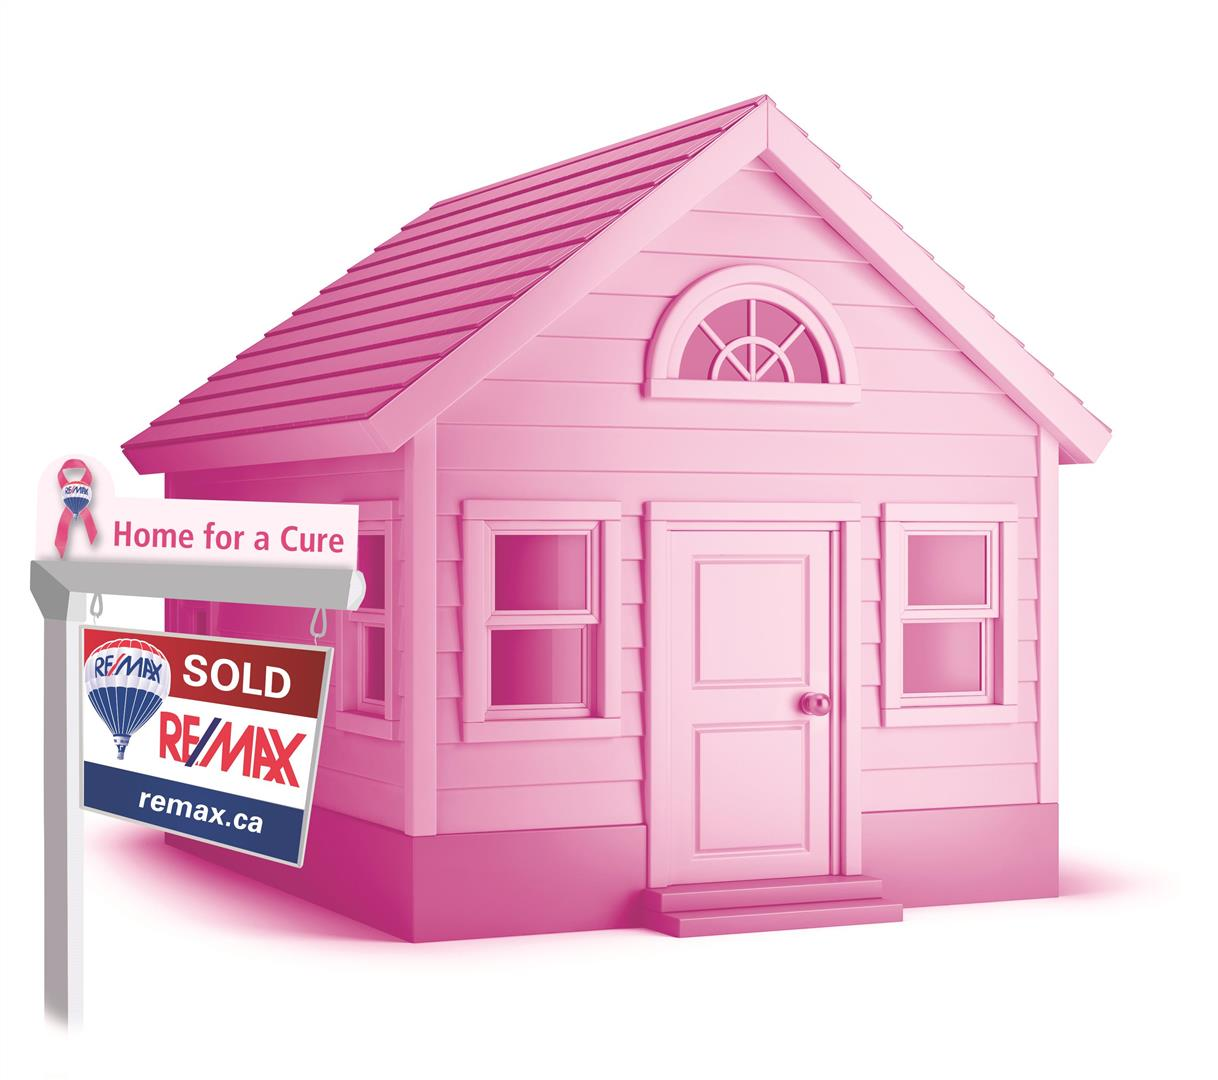 Remax blueprint realty home for a cure remax real estate professionals take an active role in helping to create a future without breast cancer and you can too through the remax home for a cure malvernweather Gallery